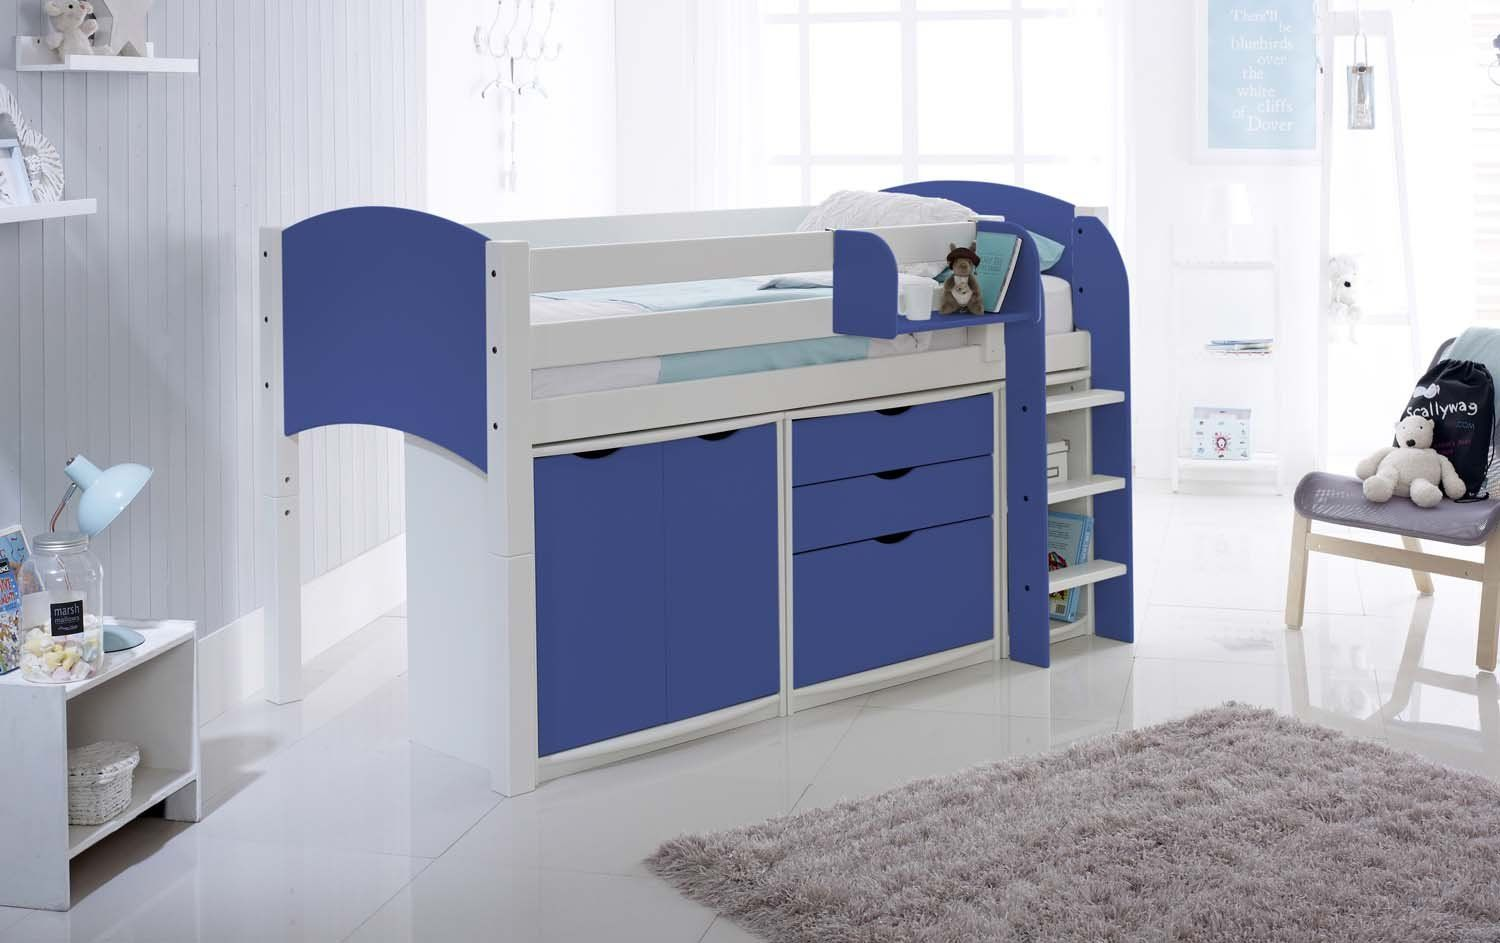 Scallywag Cabin Bed Contour Furniture Package Includes Scallywag - Scallywags bedroom furniture